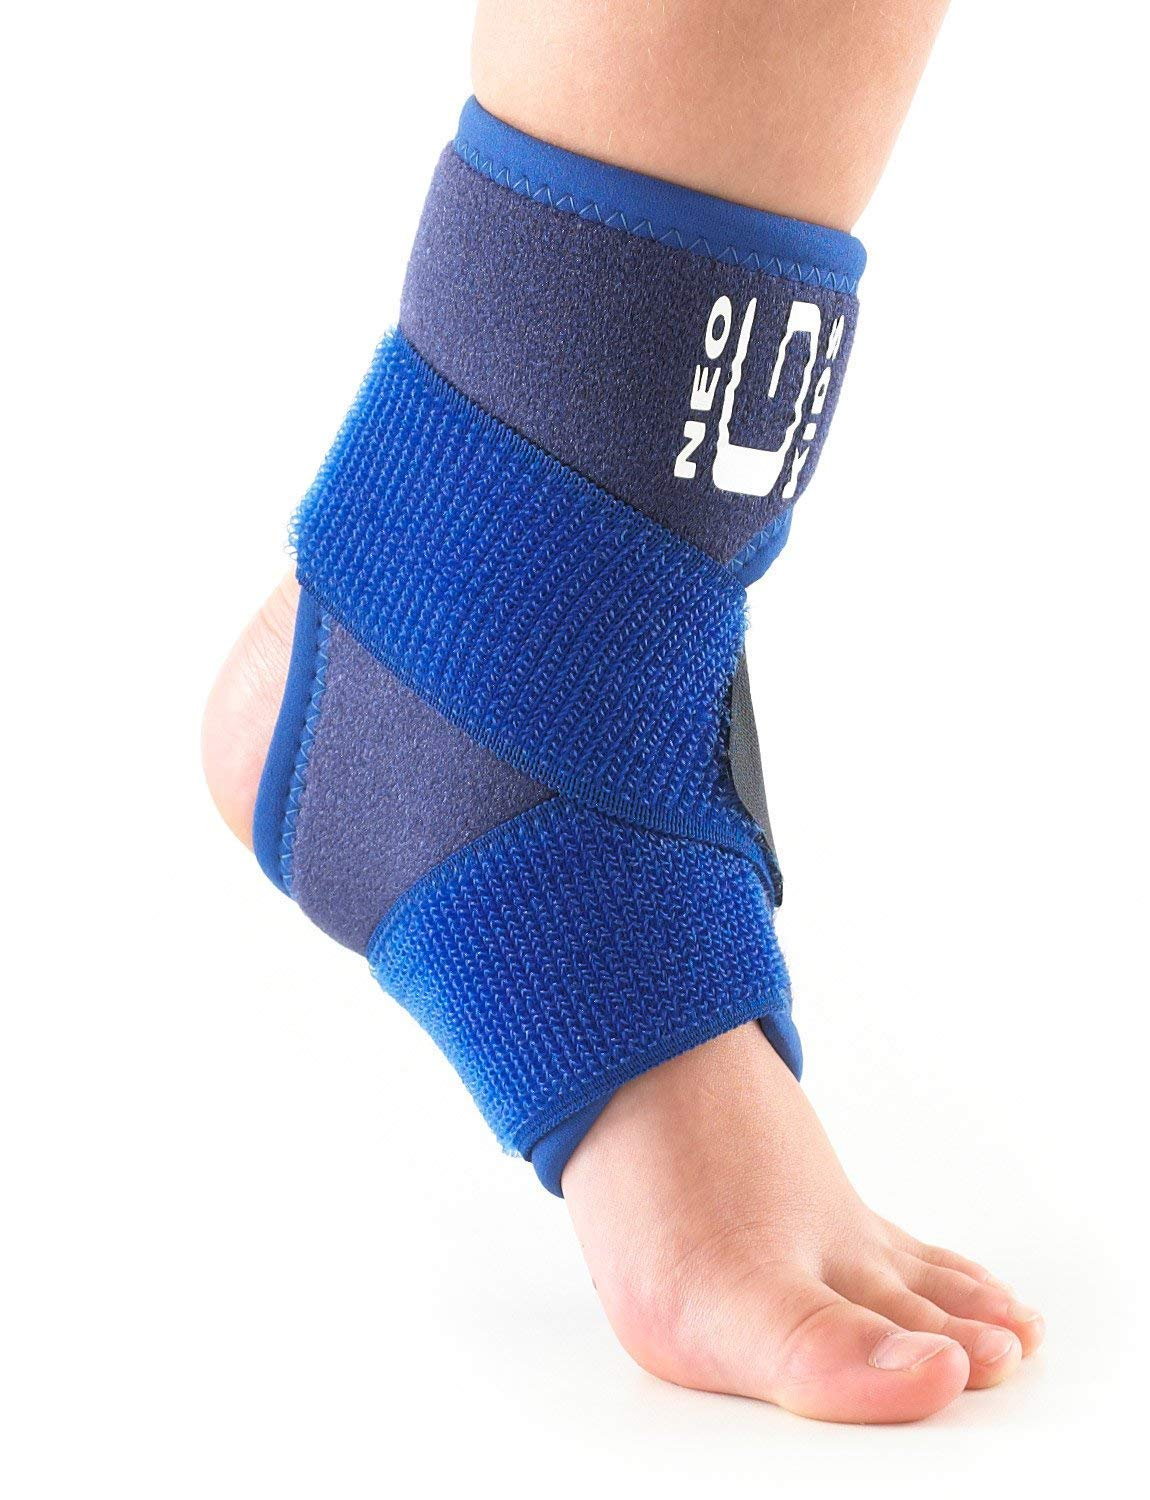 b0149df148 Buy Neo G Kids Ankle Support with Figure - 8 Strap (Universal) Online at  Low Prices in India - Amazon.in